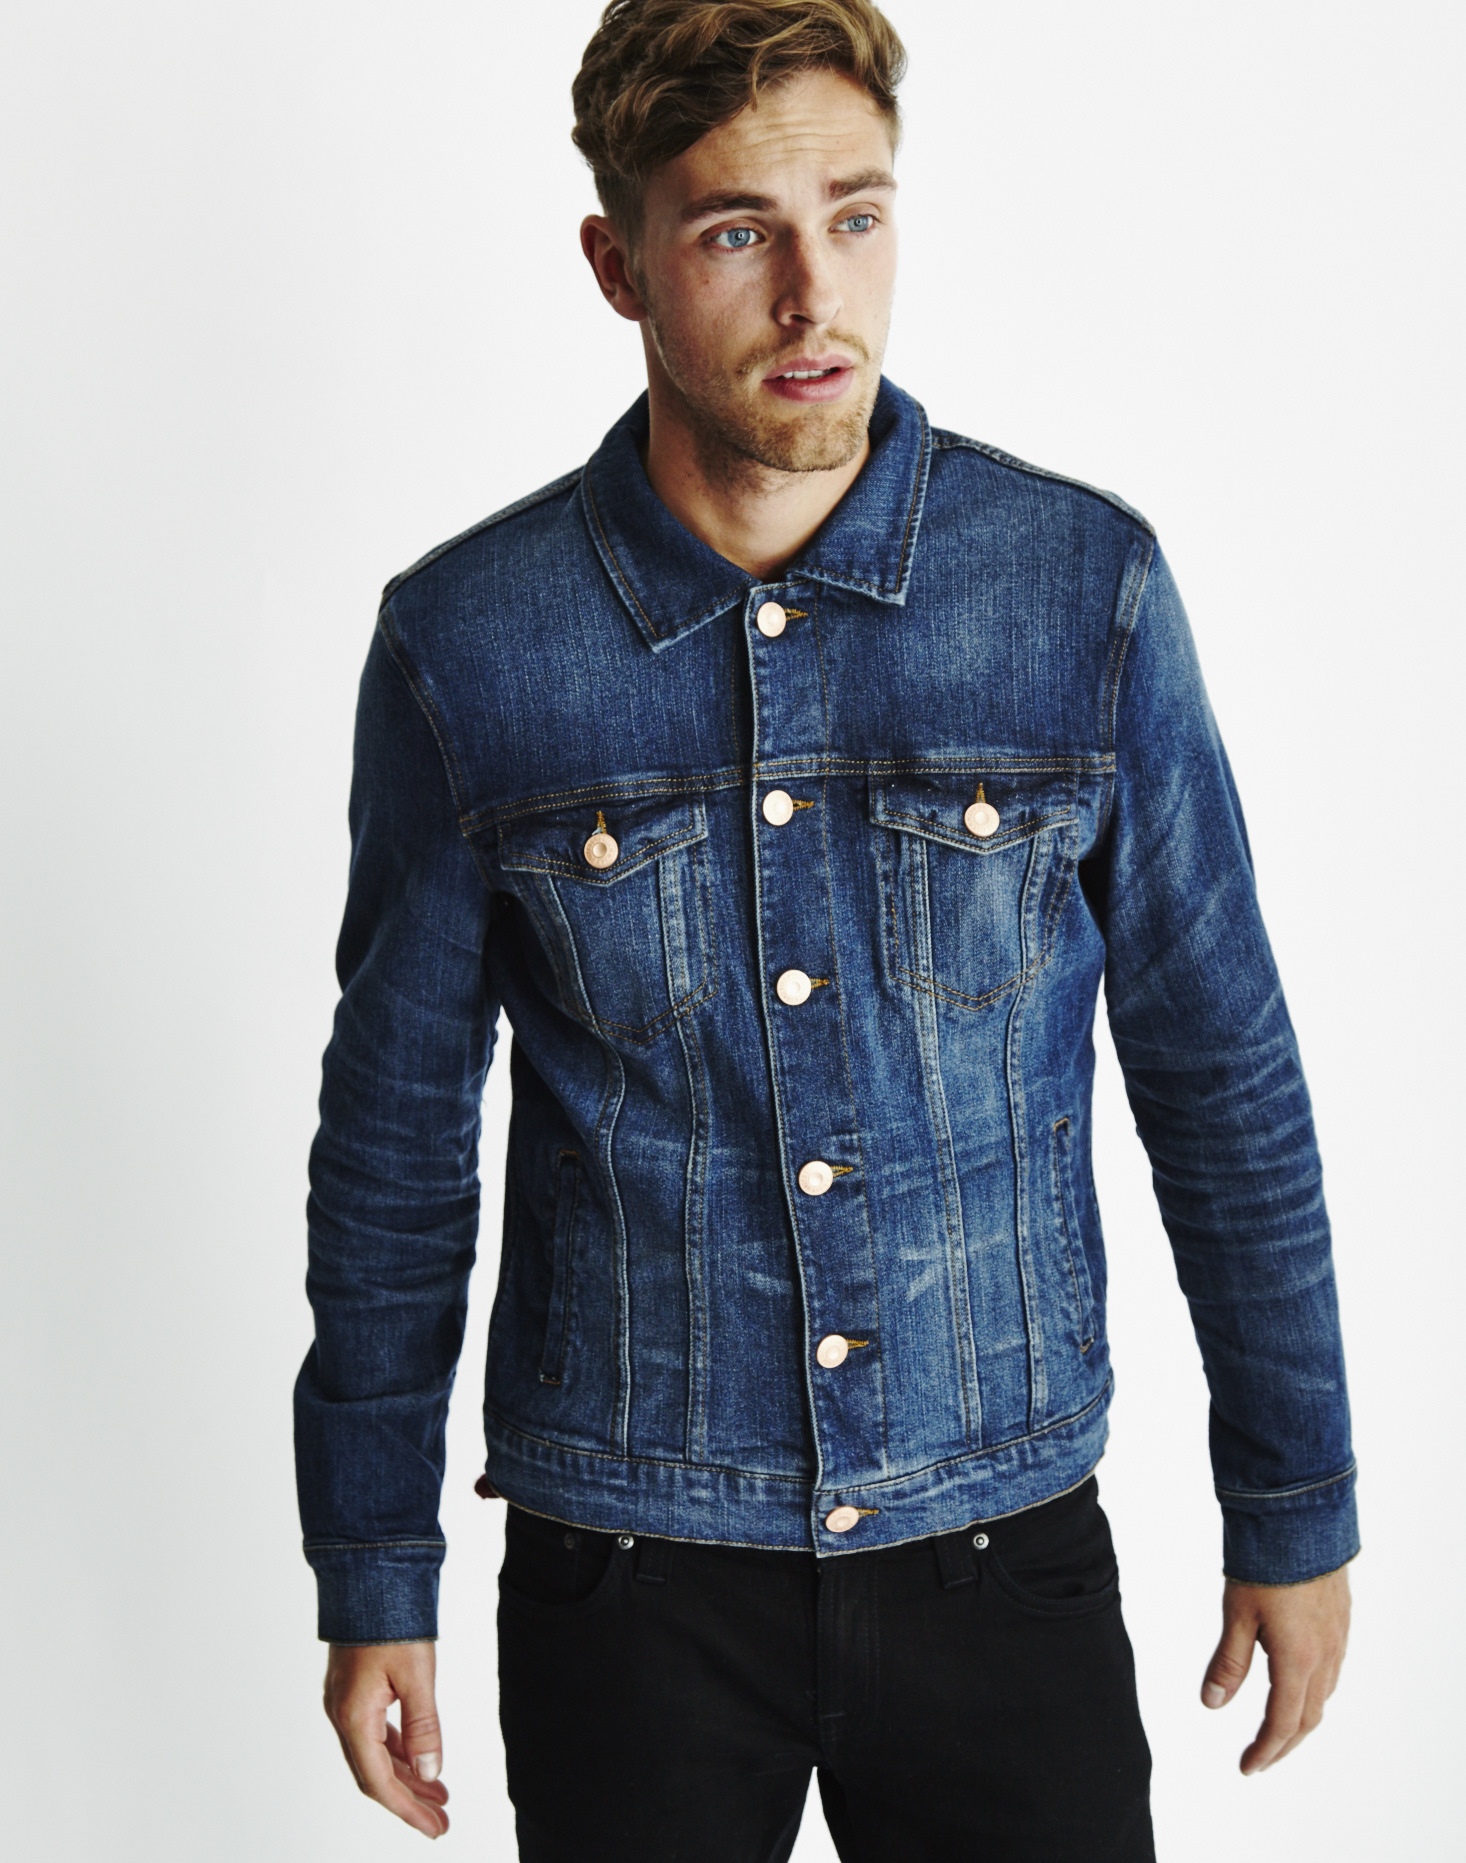 Men S Denim Jackets kZsPHb